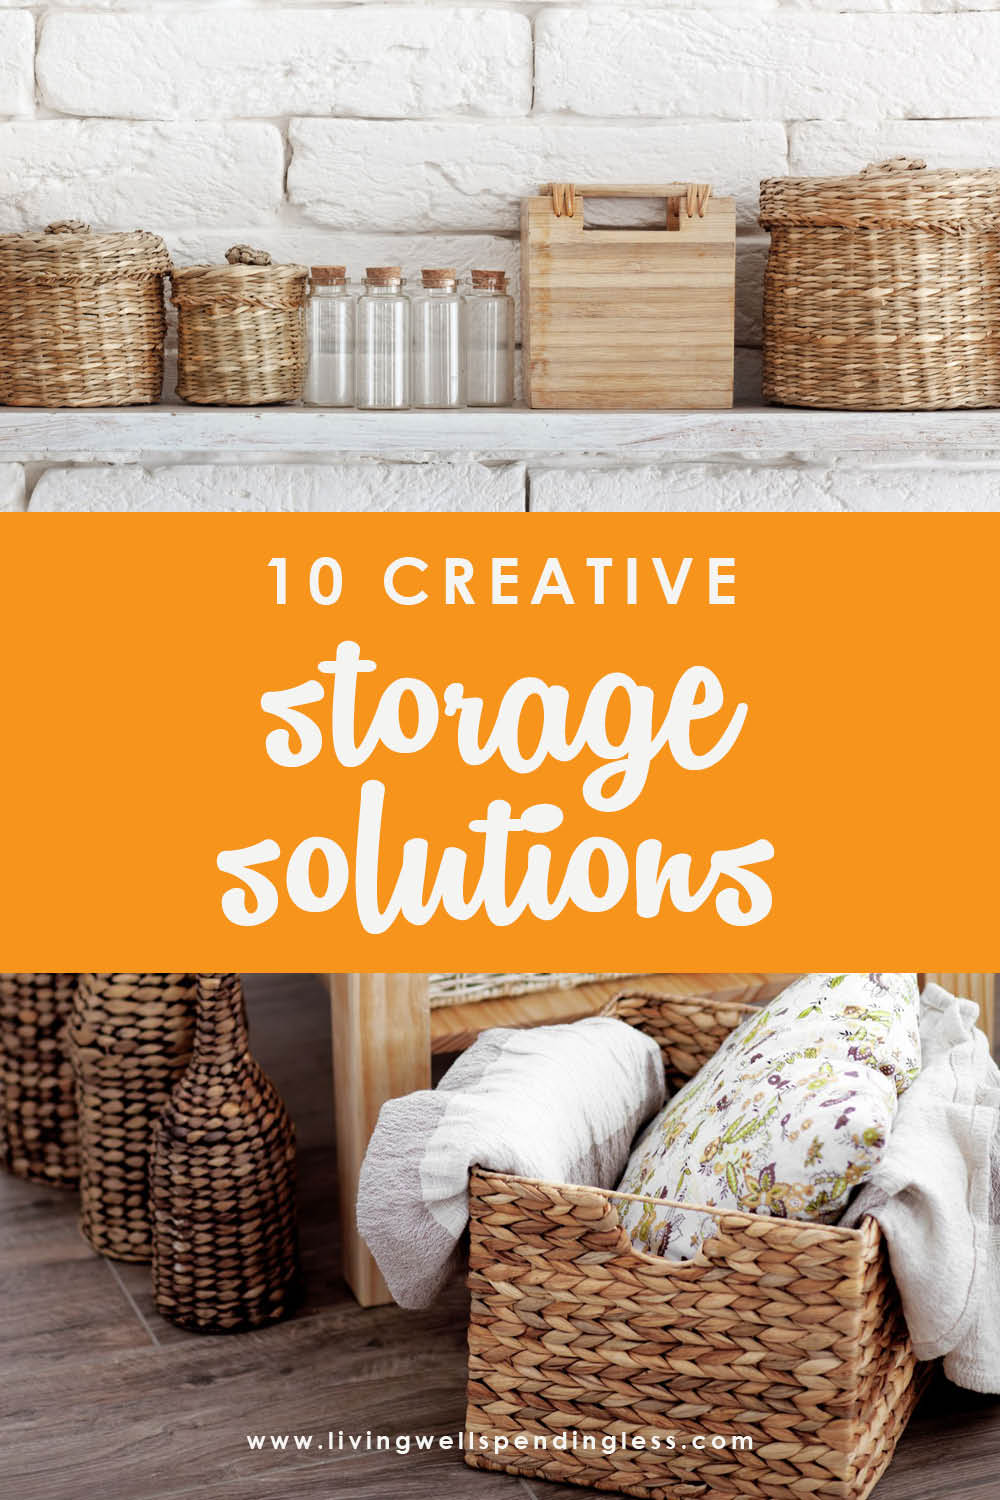 Need more space for your stuff? Use these creative storage solutions to maximize organization within your home and declutter! #declutter #organization #organizationalhacks #storagesolutions #maximizespace #tinyliving #storage